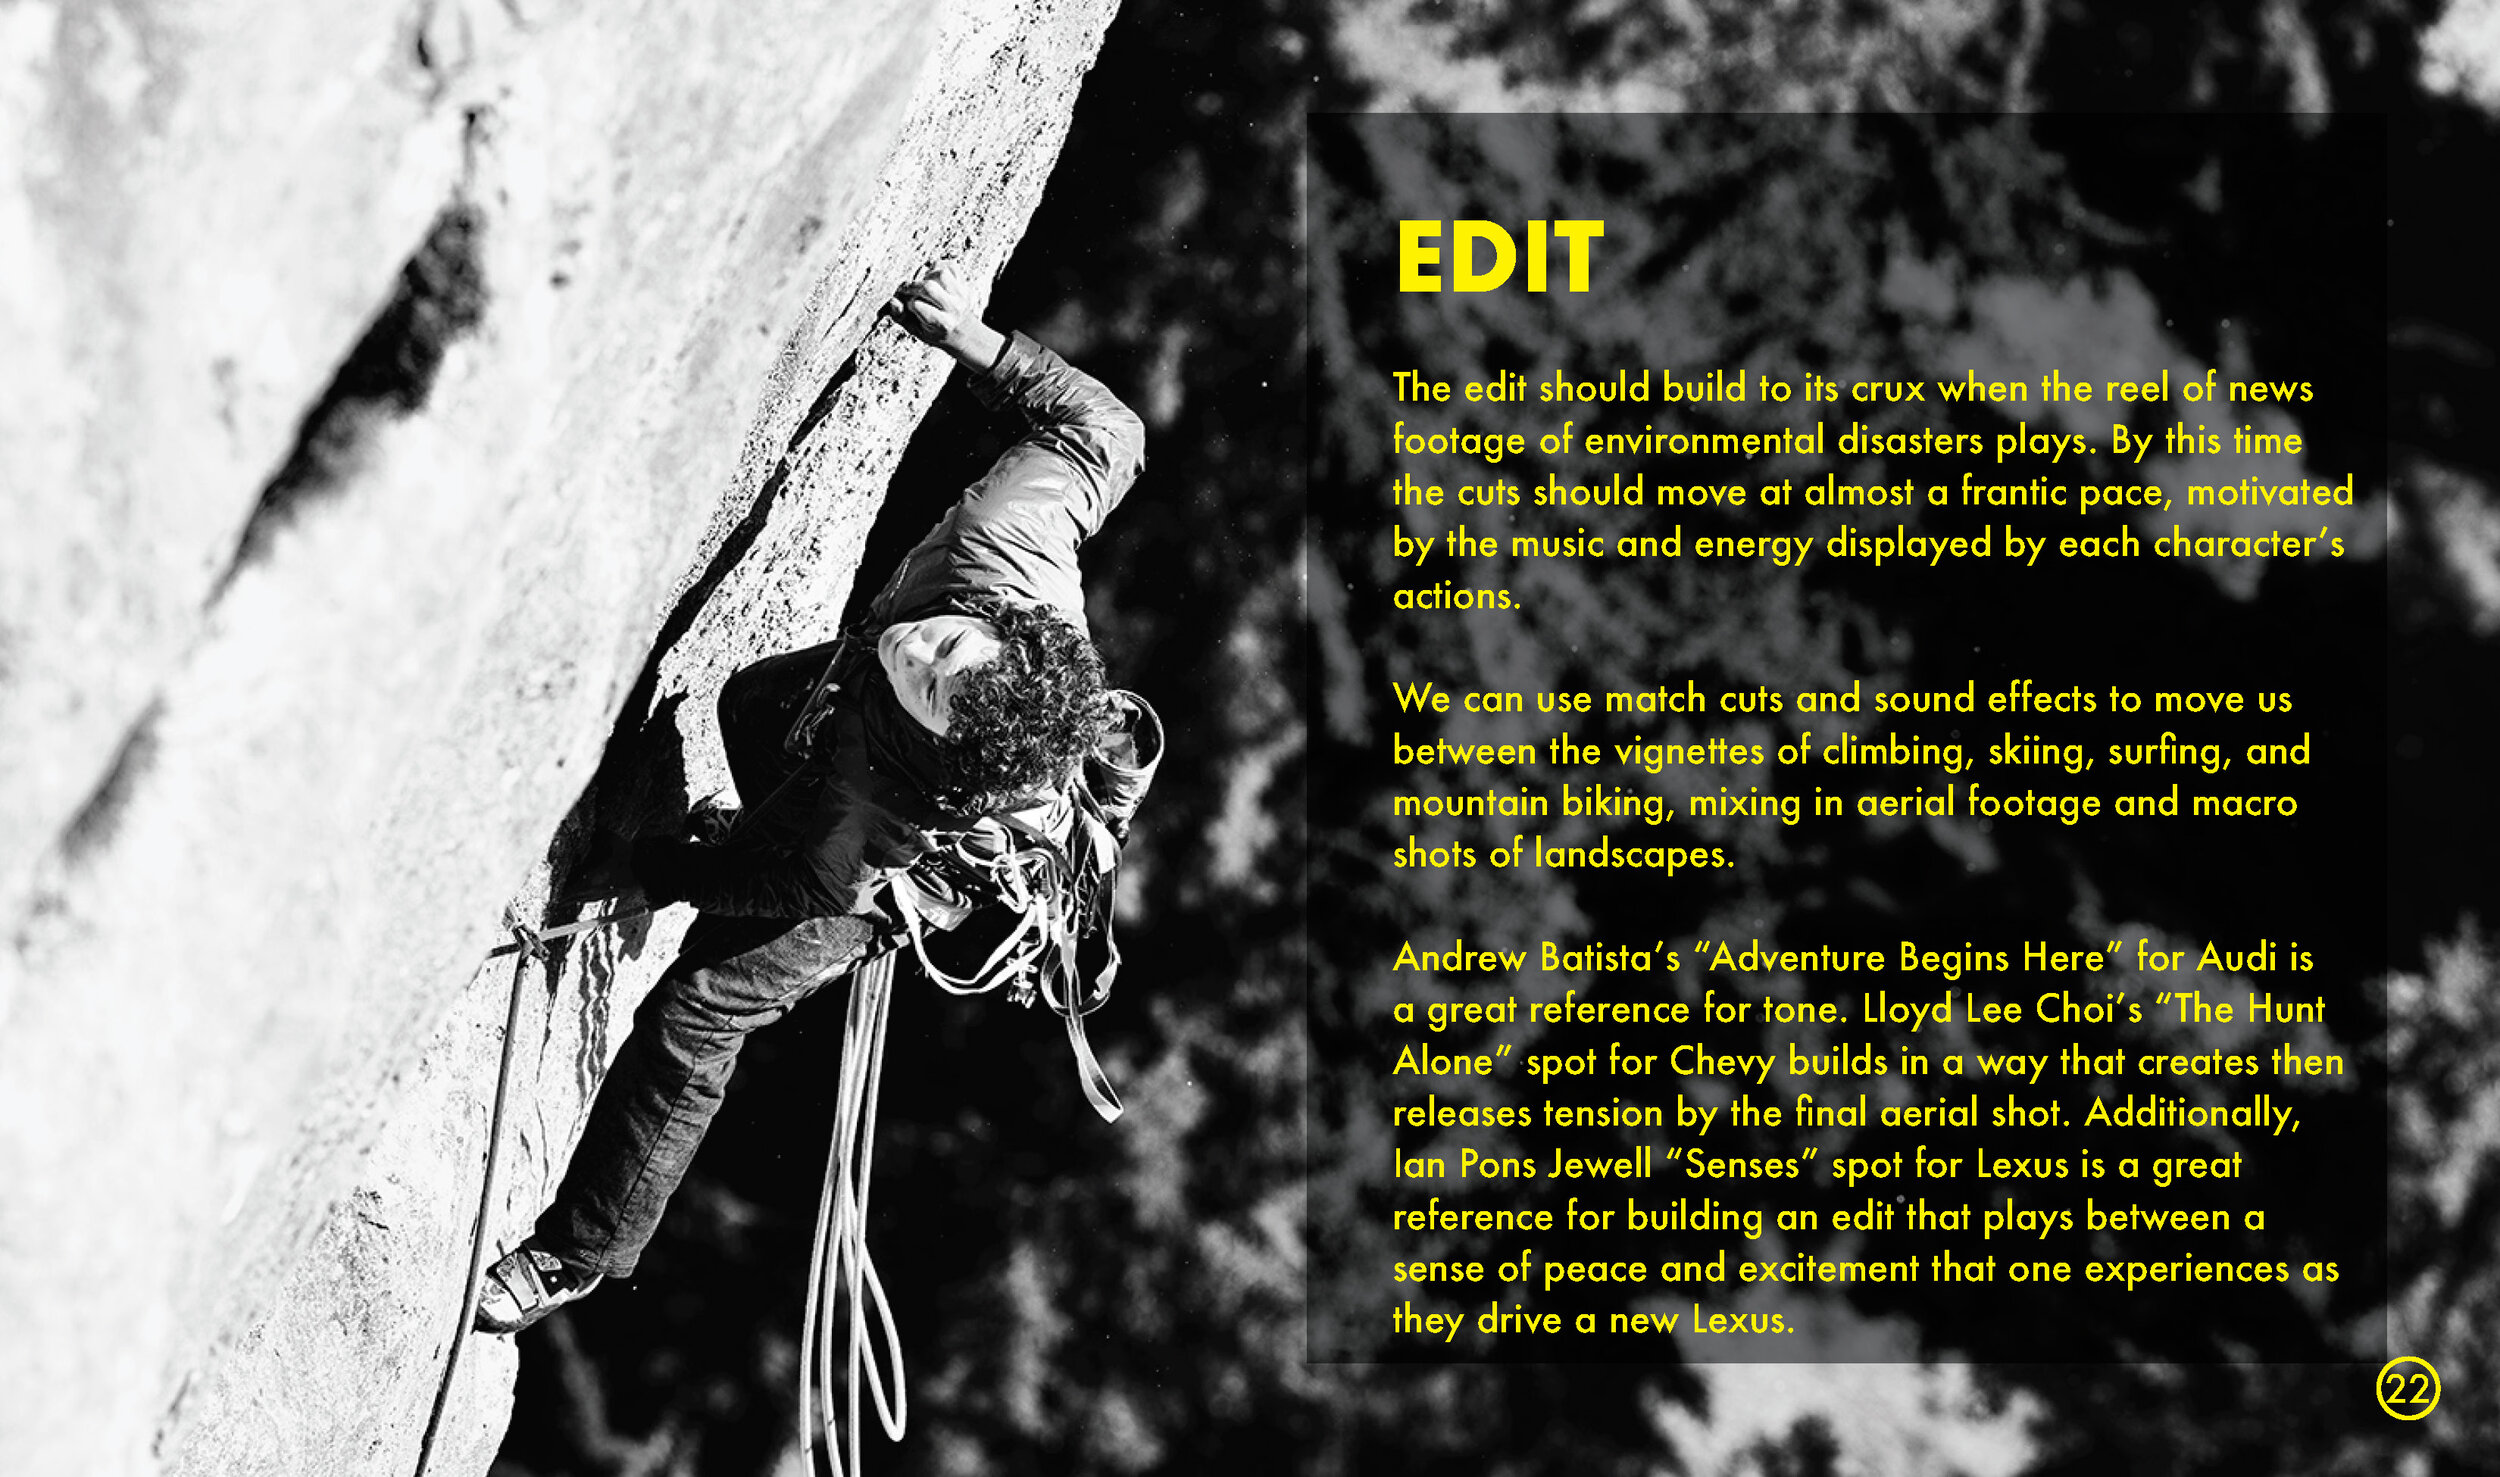 Patagonia_DirectorsTreatment_Page_22.jpg